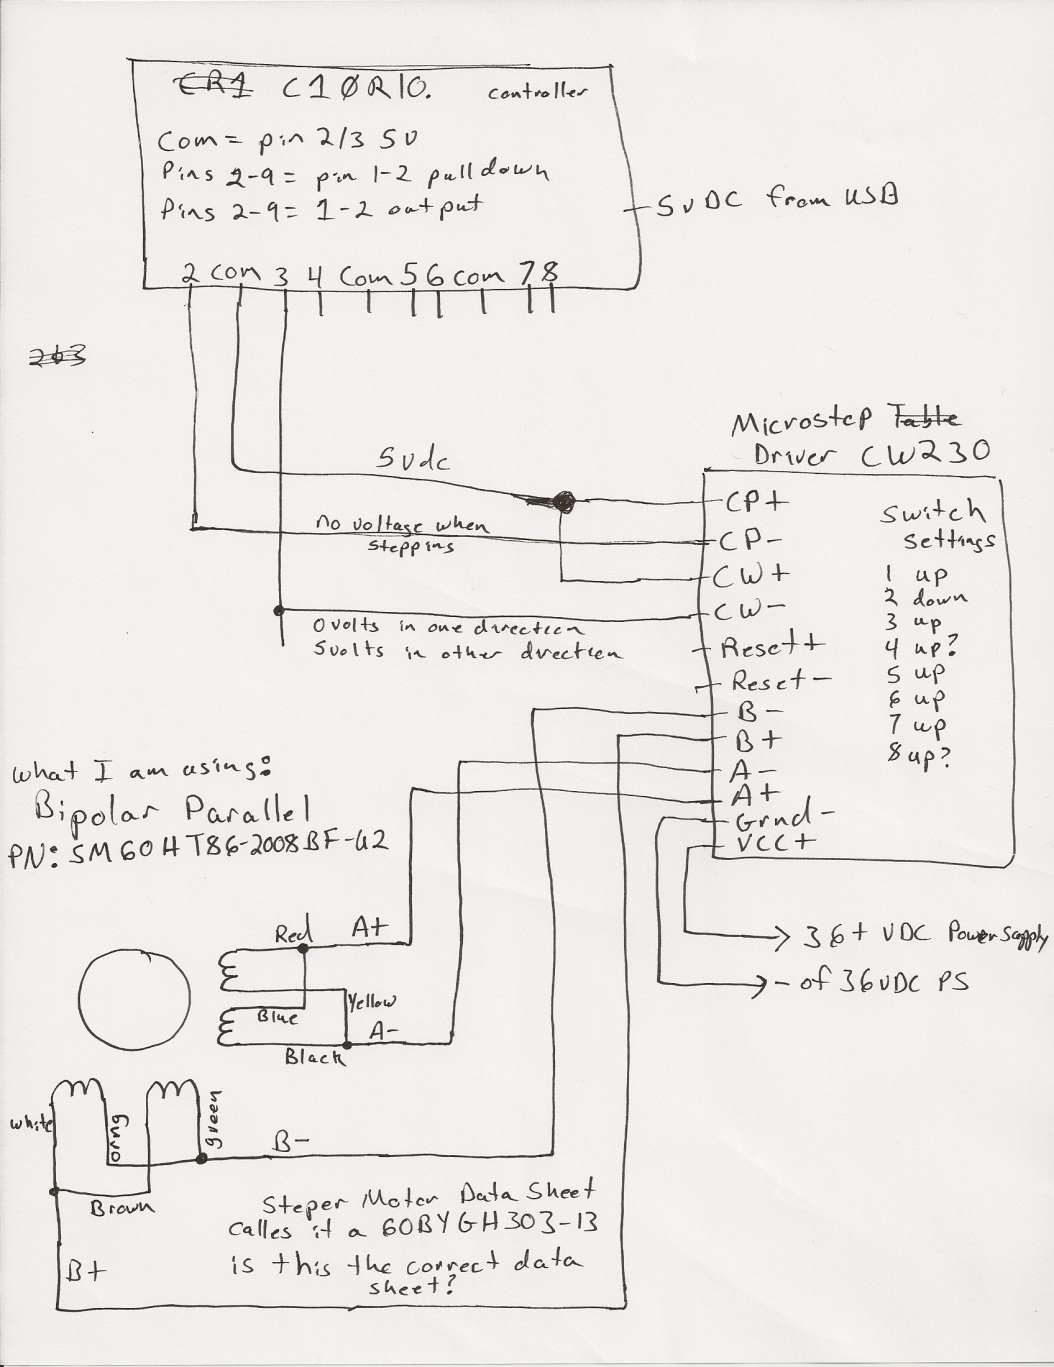 Cw230 Driver Cnc Wiring Diagram Free Download Diagrams Electronics Of My First 2 At Bldc Machine Schematic